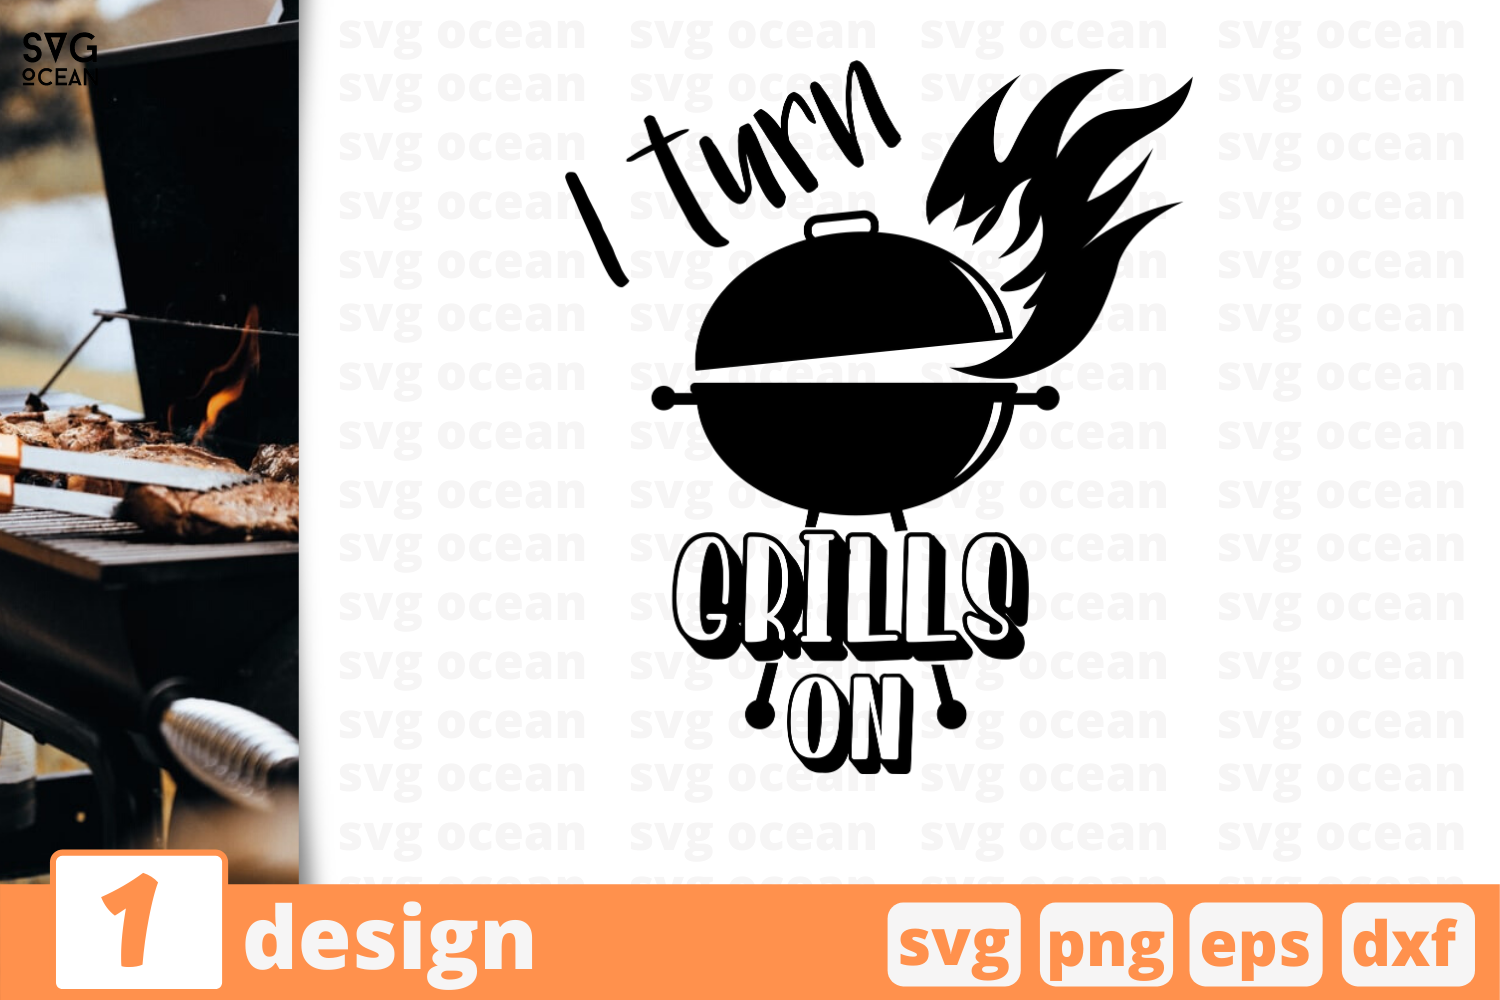 Download Free I Turn Grills On Graphic By Svgocean Creative Fabrica for Cricut Explore, Silhouette and other cutting machines.